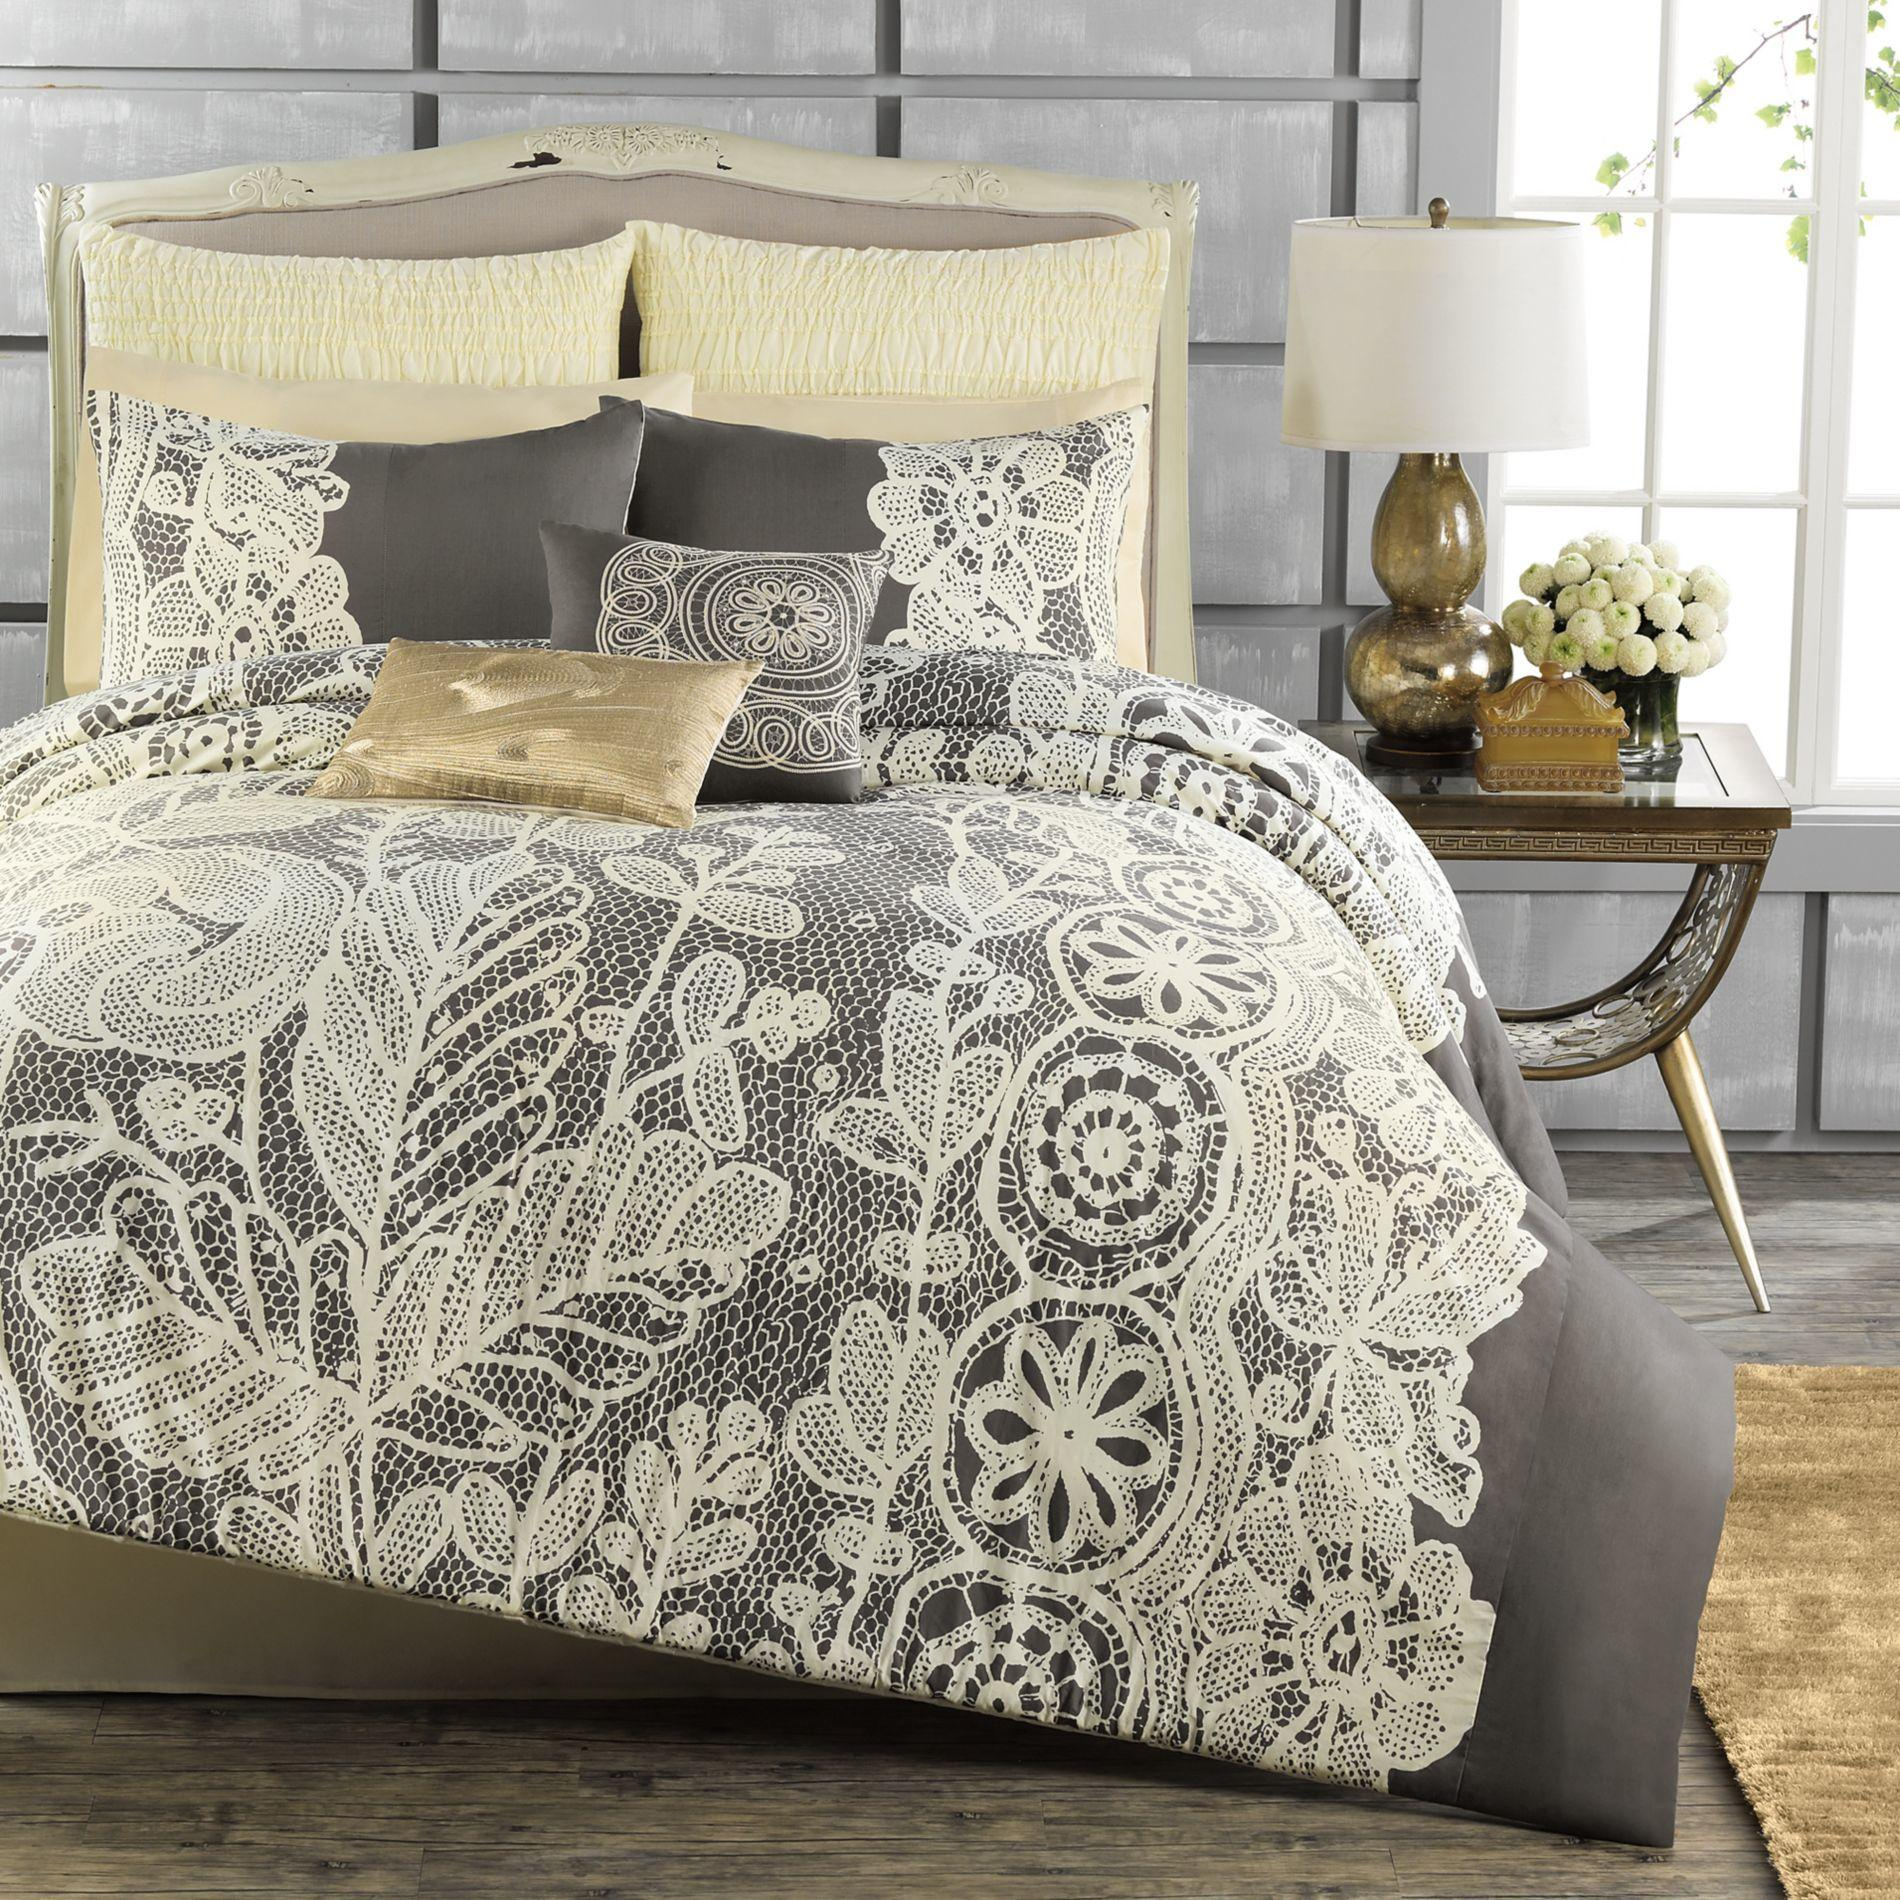 Anthology madeline reversible comforter from bed bath - Bed bath and beyond bedroom furniture ...